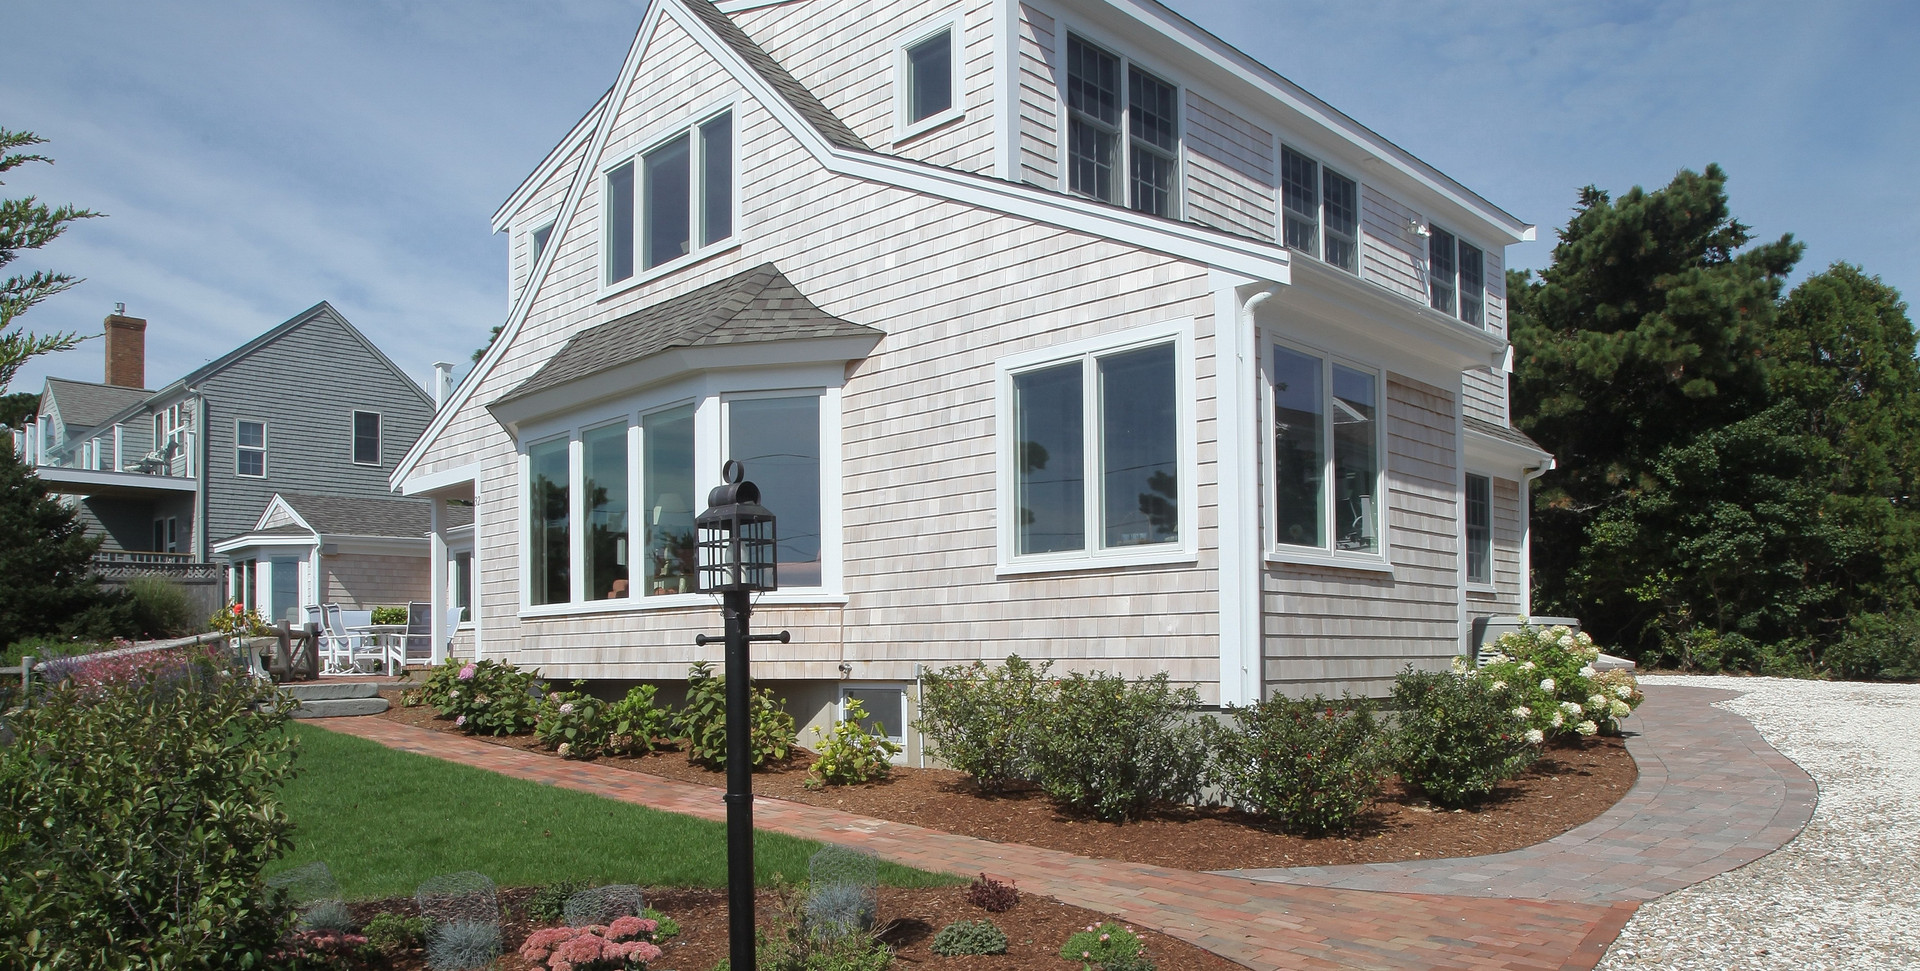 Ridgevale Beach, West Chatham, MA, Home Remodel, new roof dormers